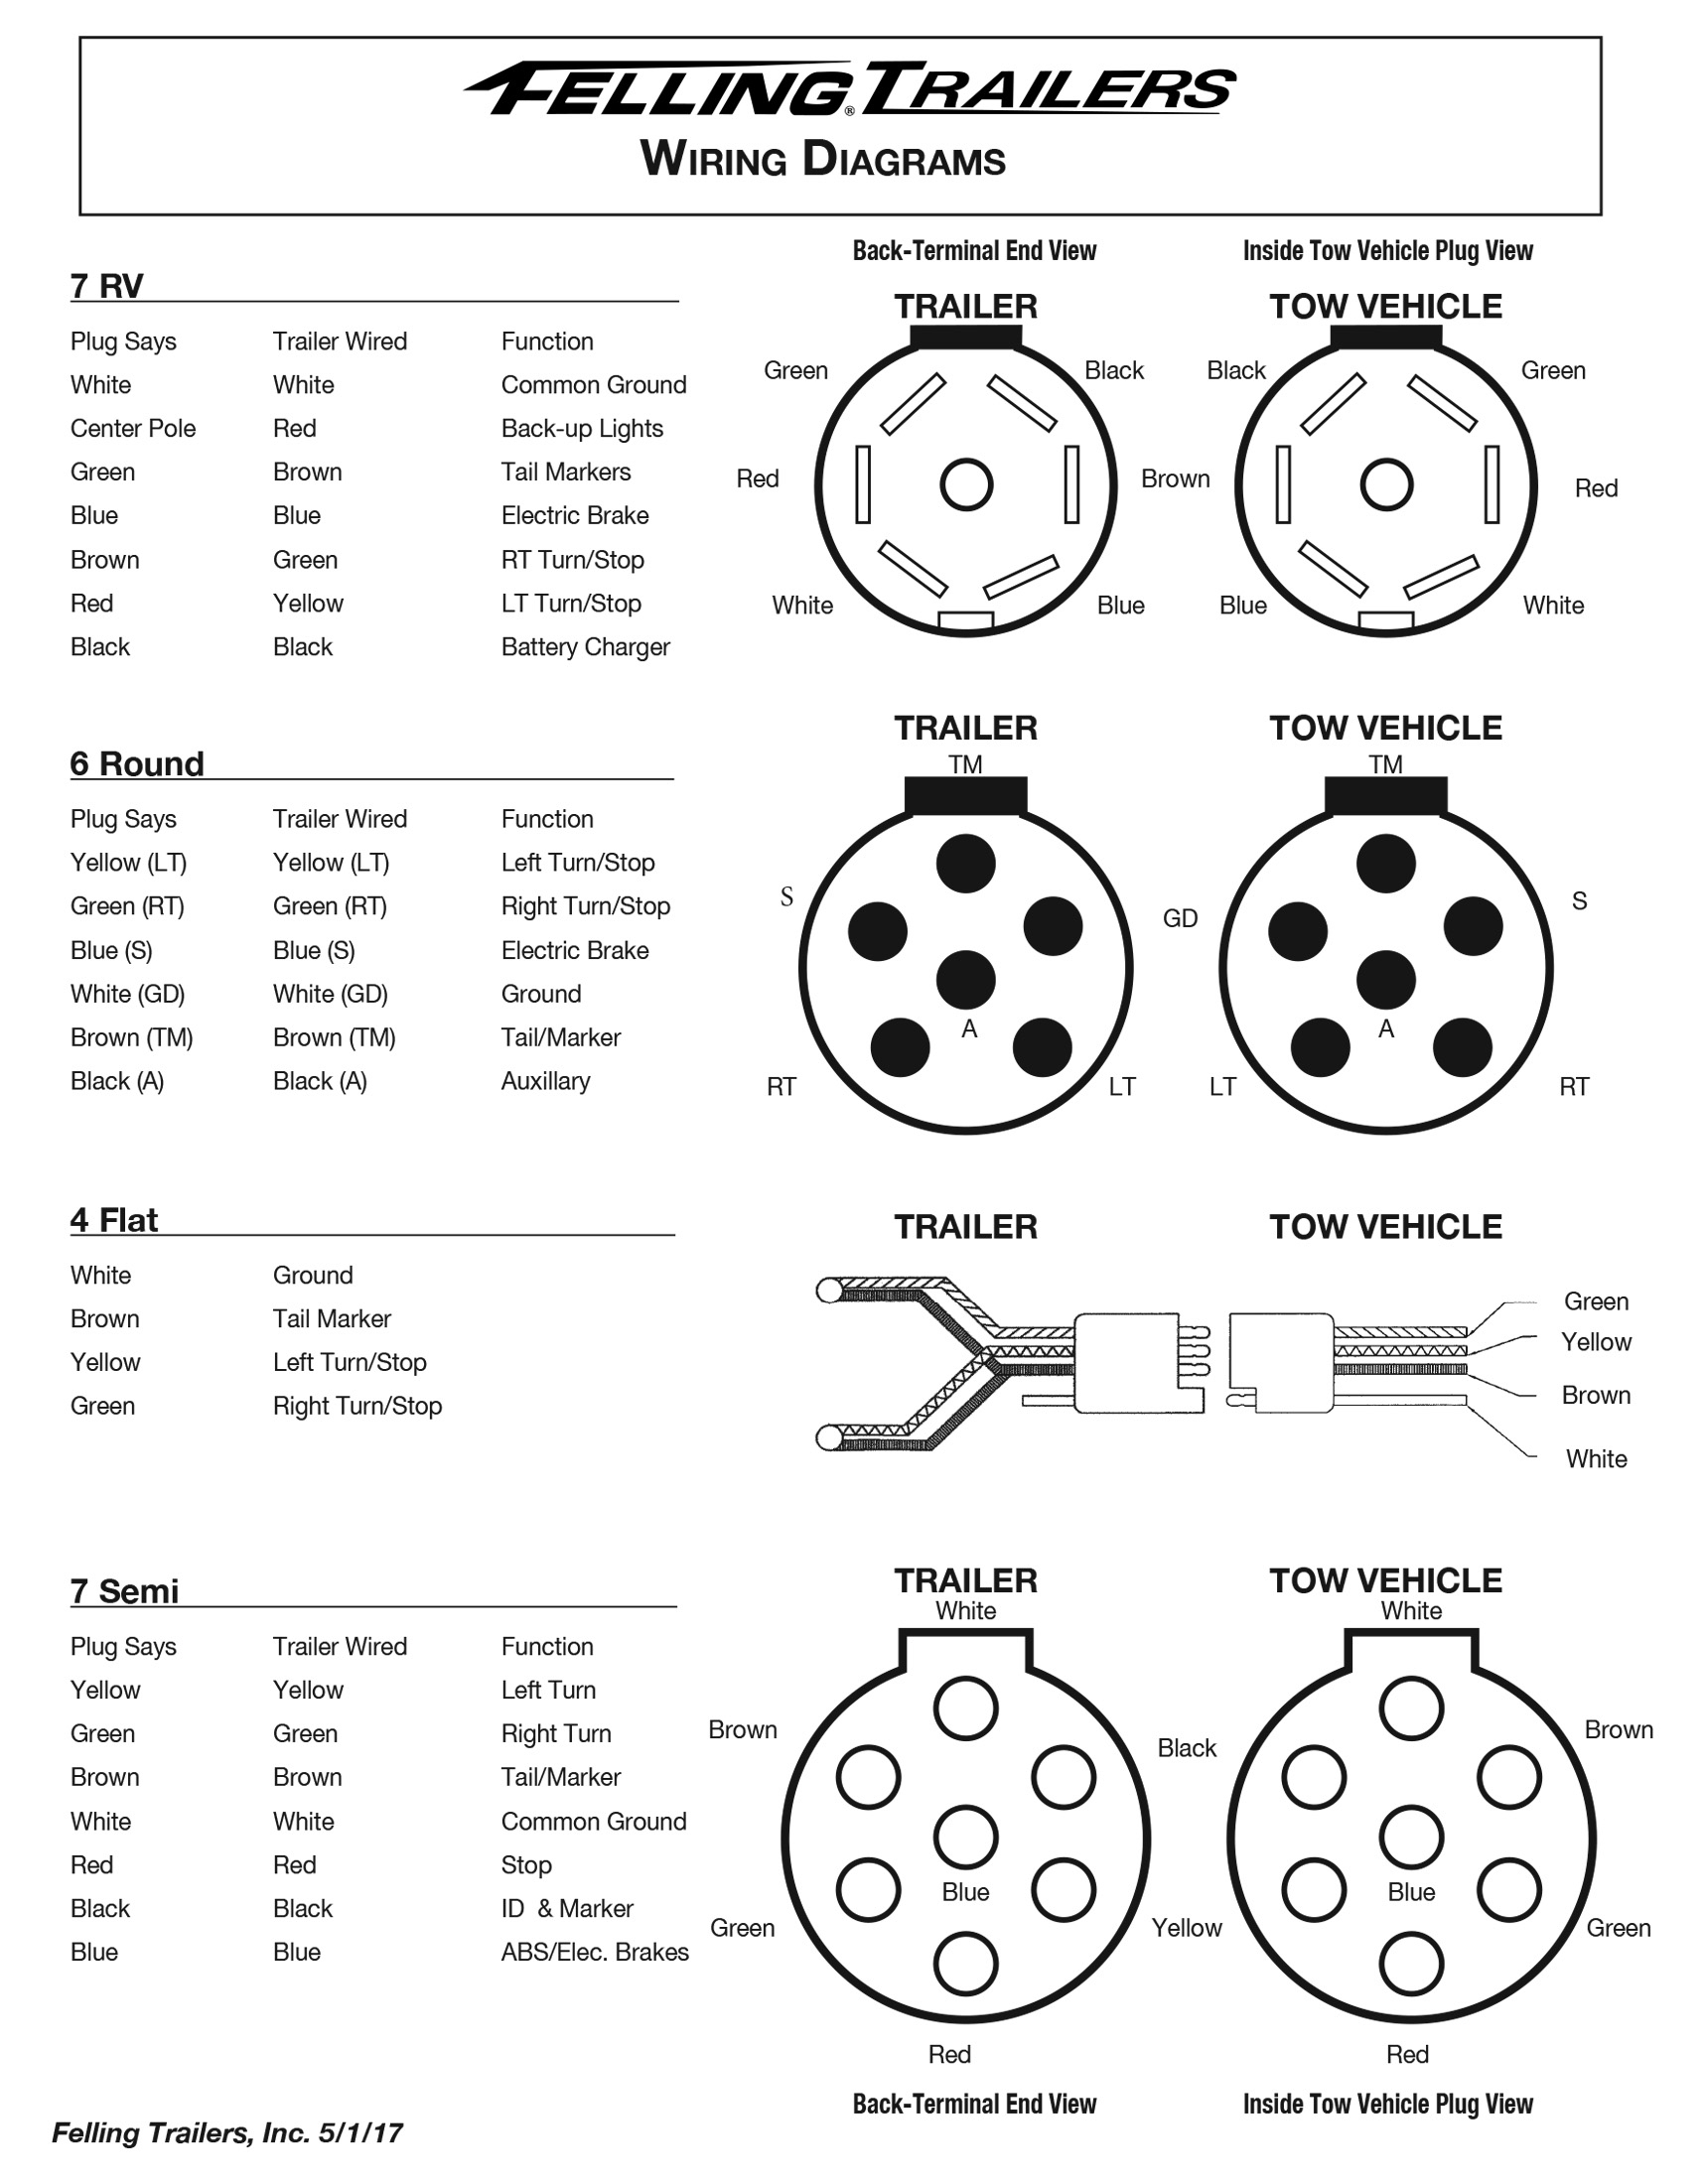 Service- Felling Trailers Wiring Diagrams, Wheel Toque - Ww Trailer Wiring Diagram